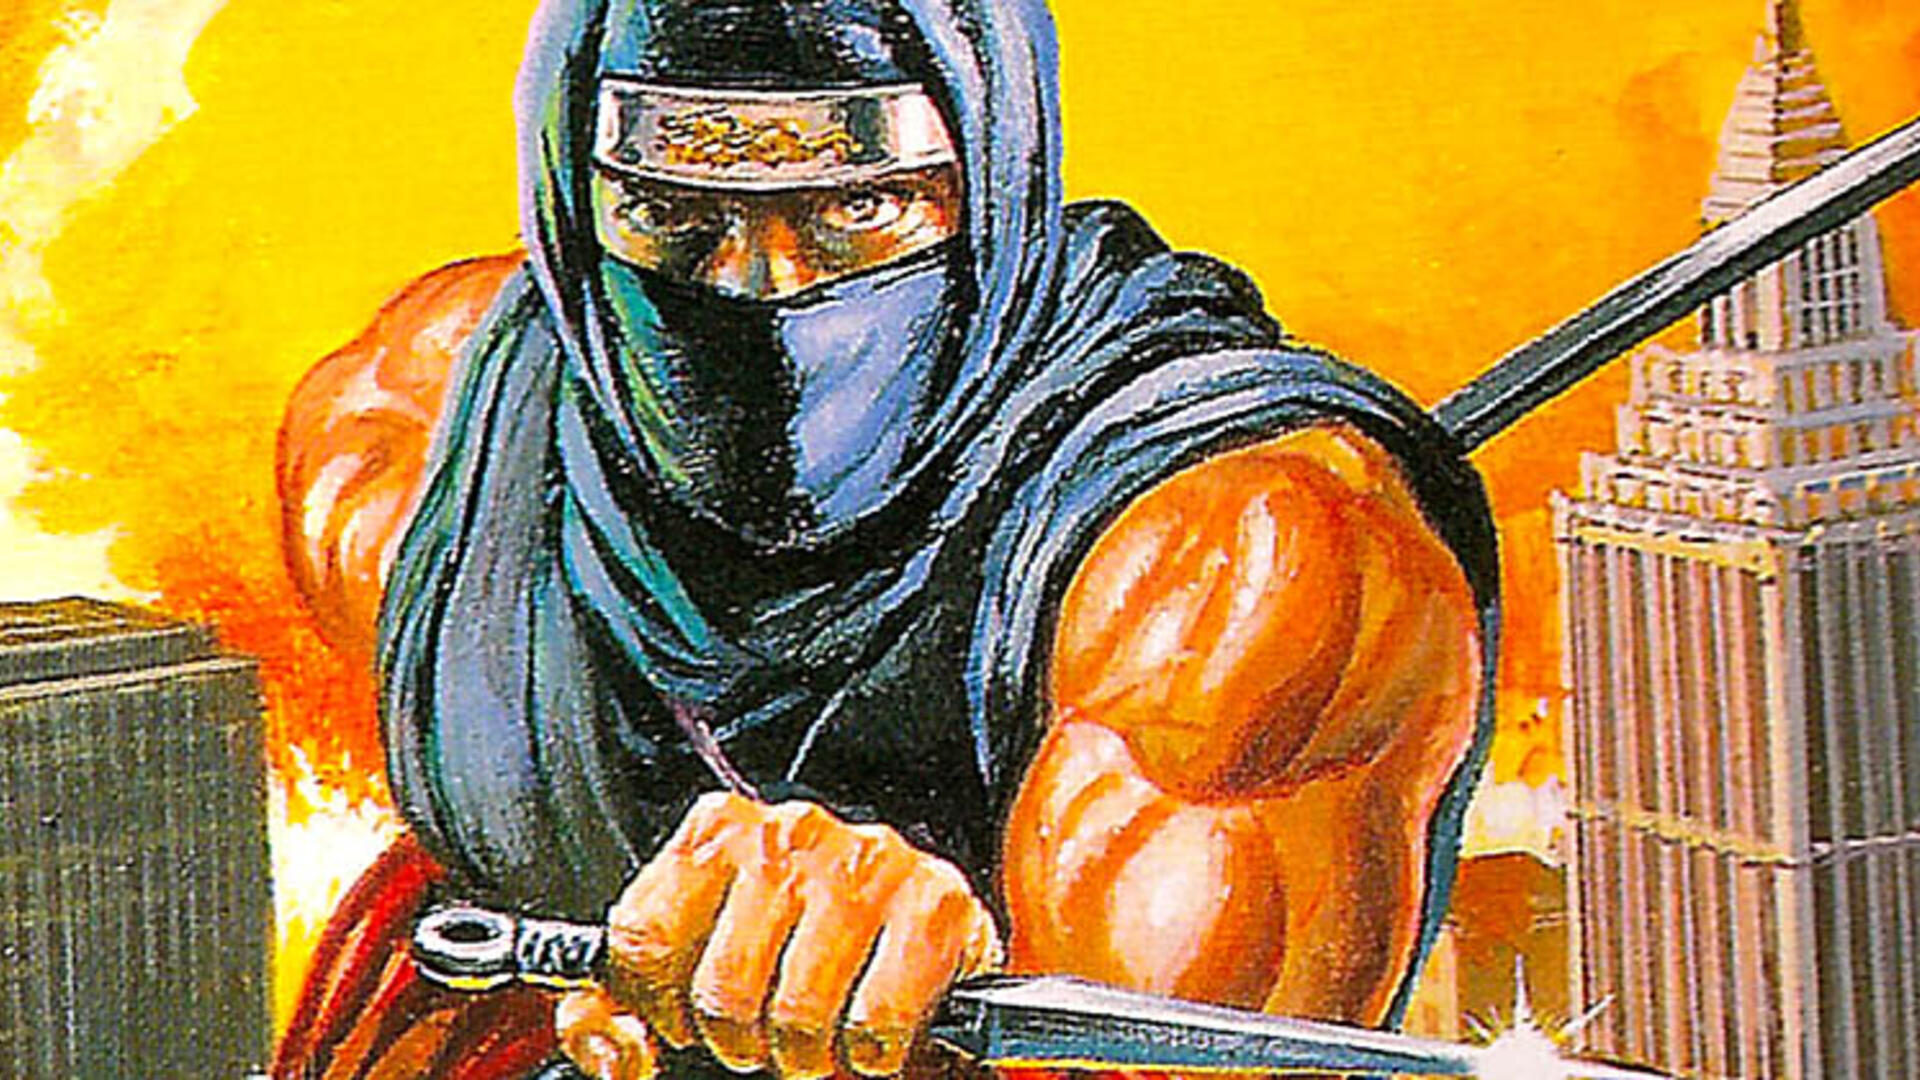 USgamer Takes on Ninja Gaiden in the Second Episode of One-Hit Wonders